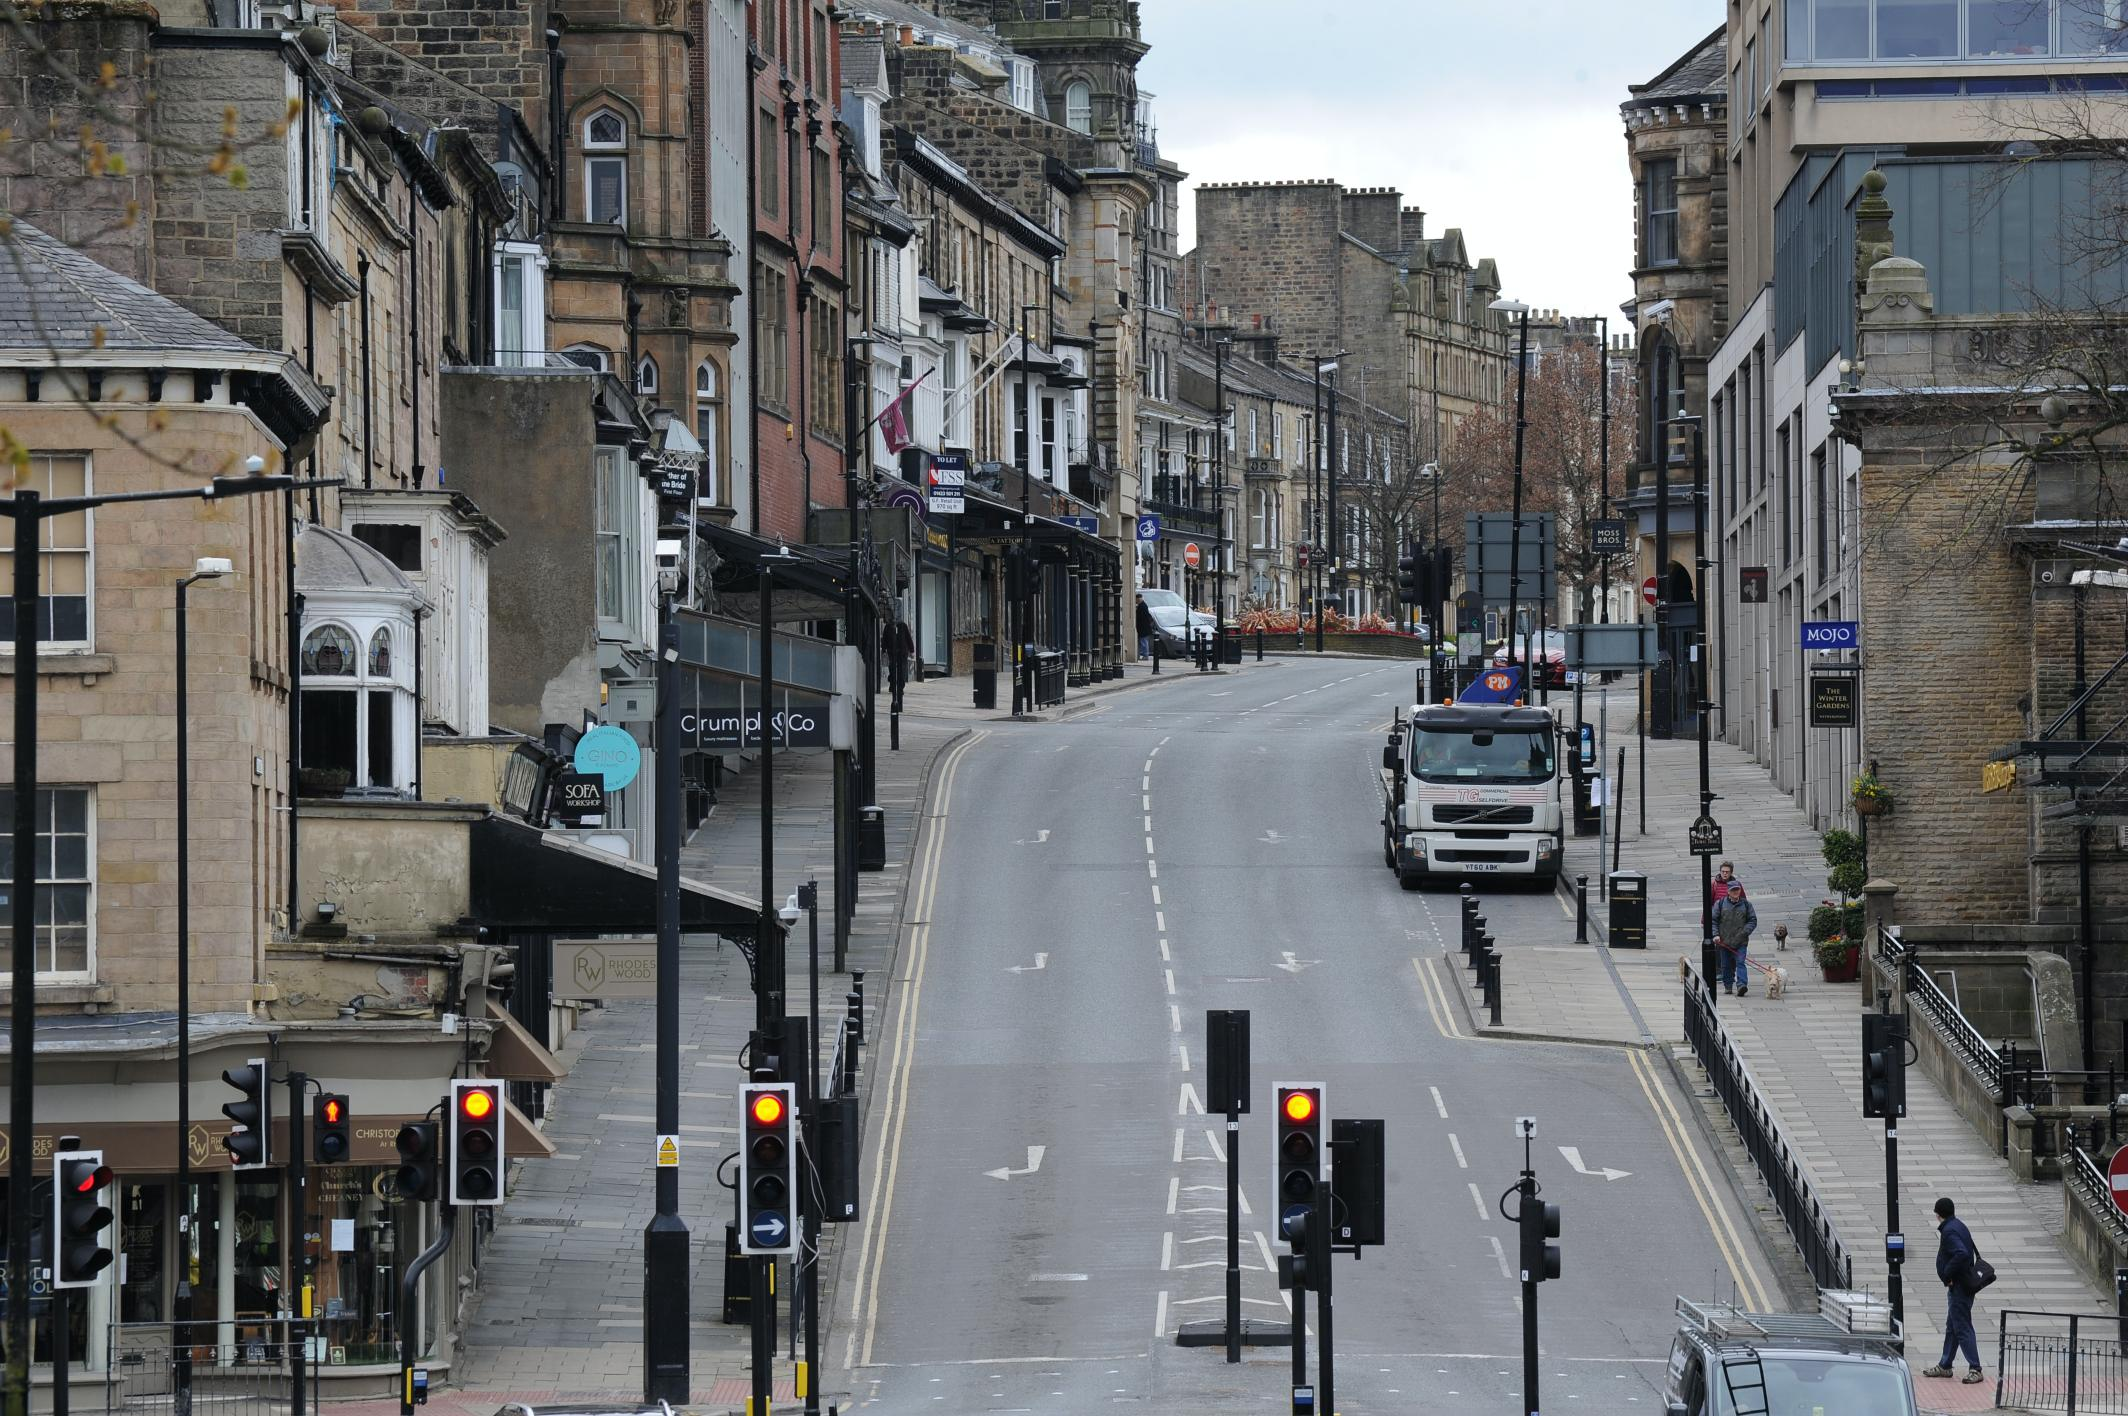 Parliament Street in Harrogate